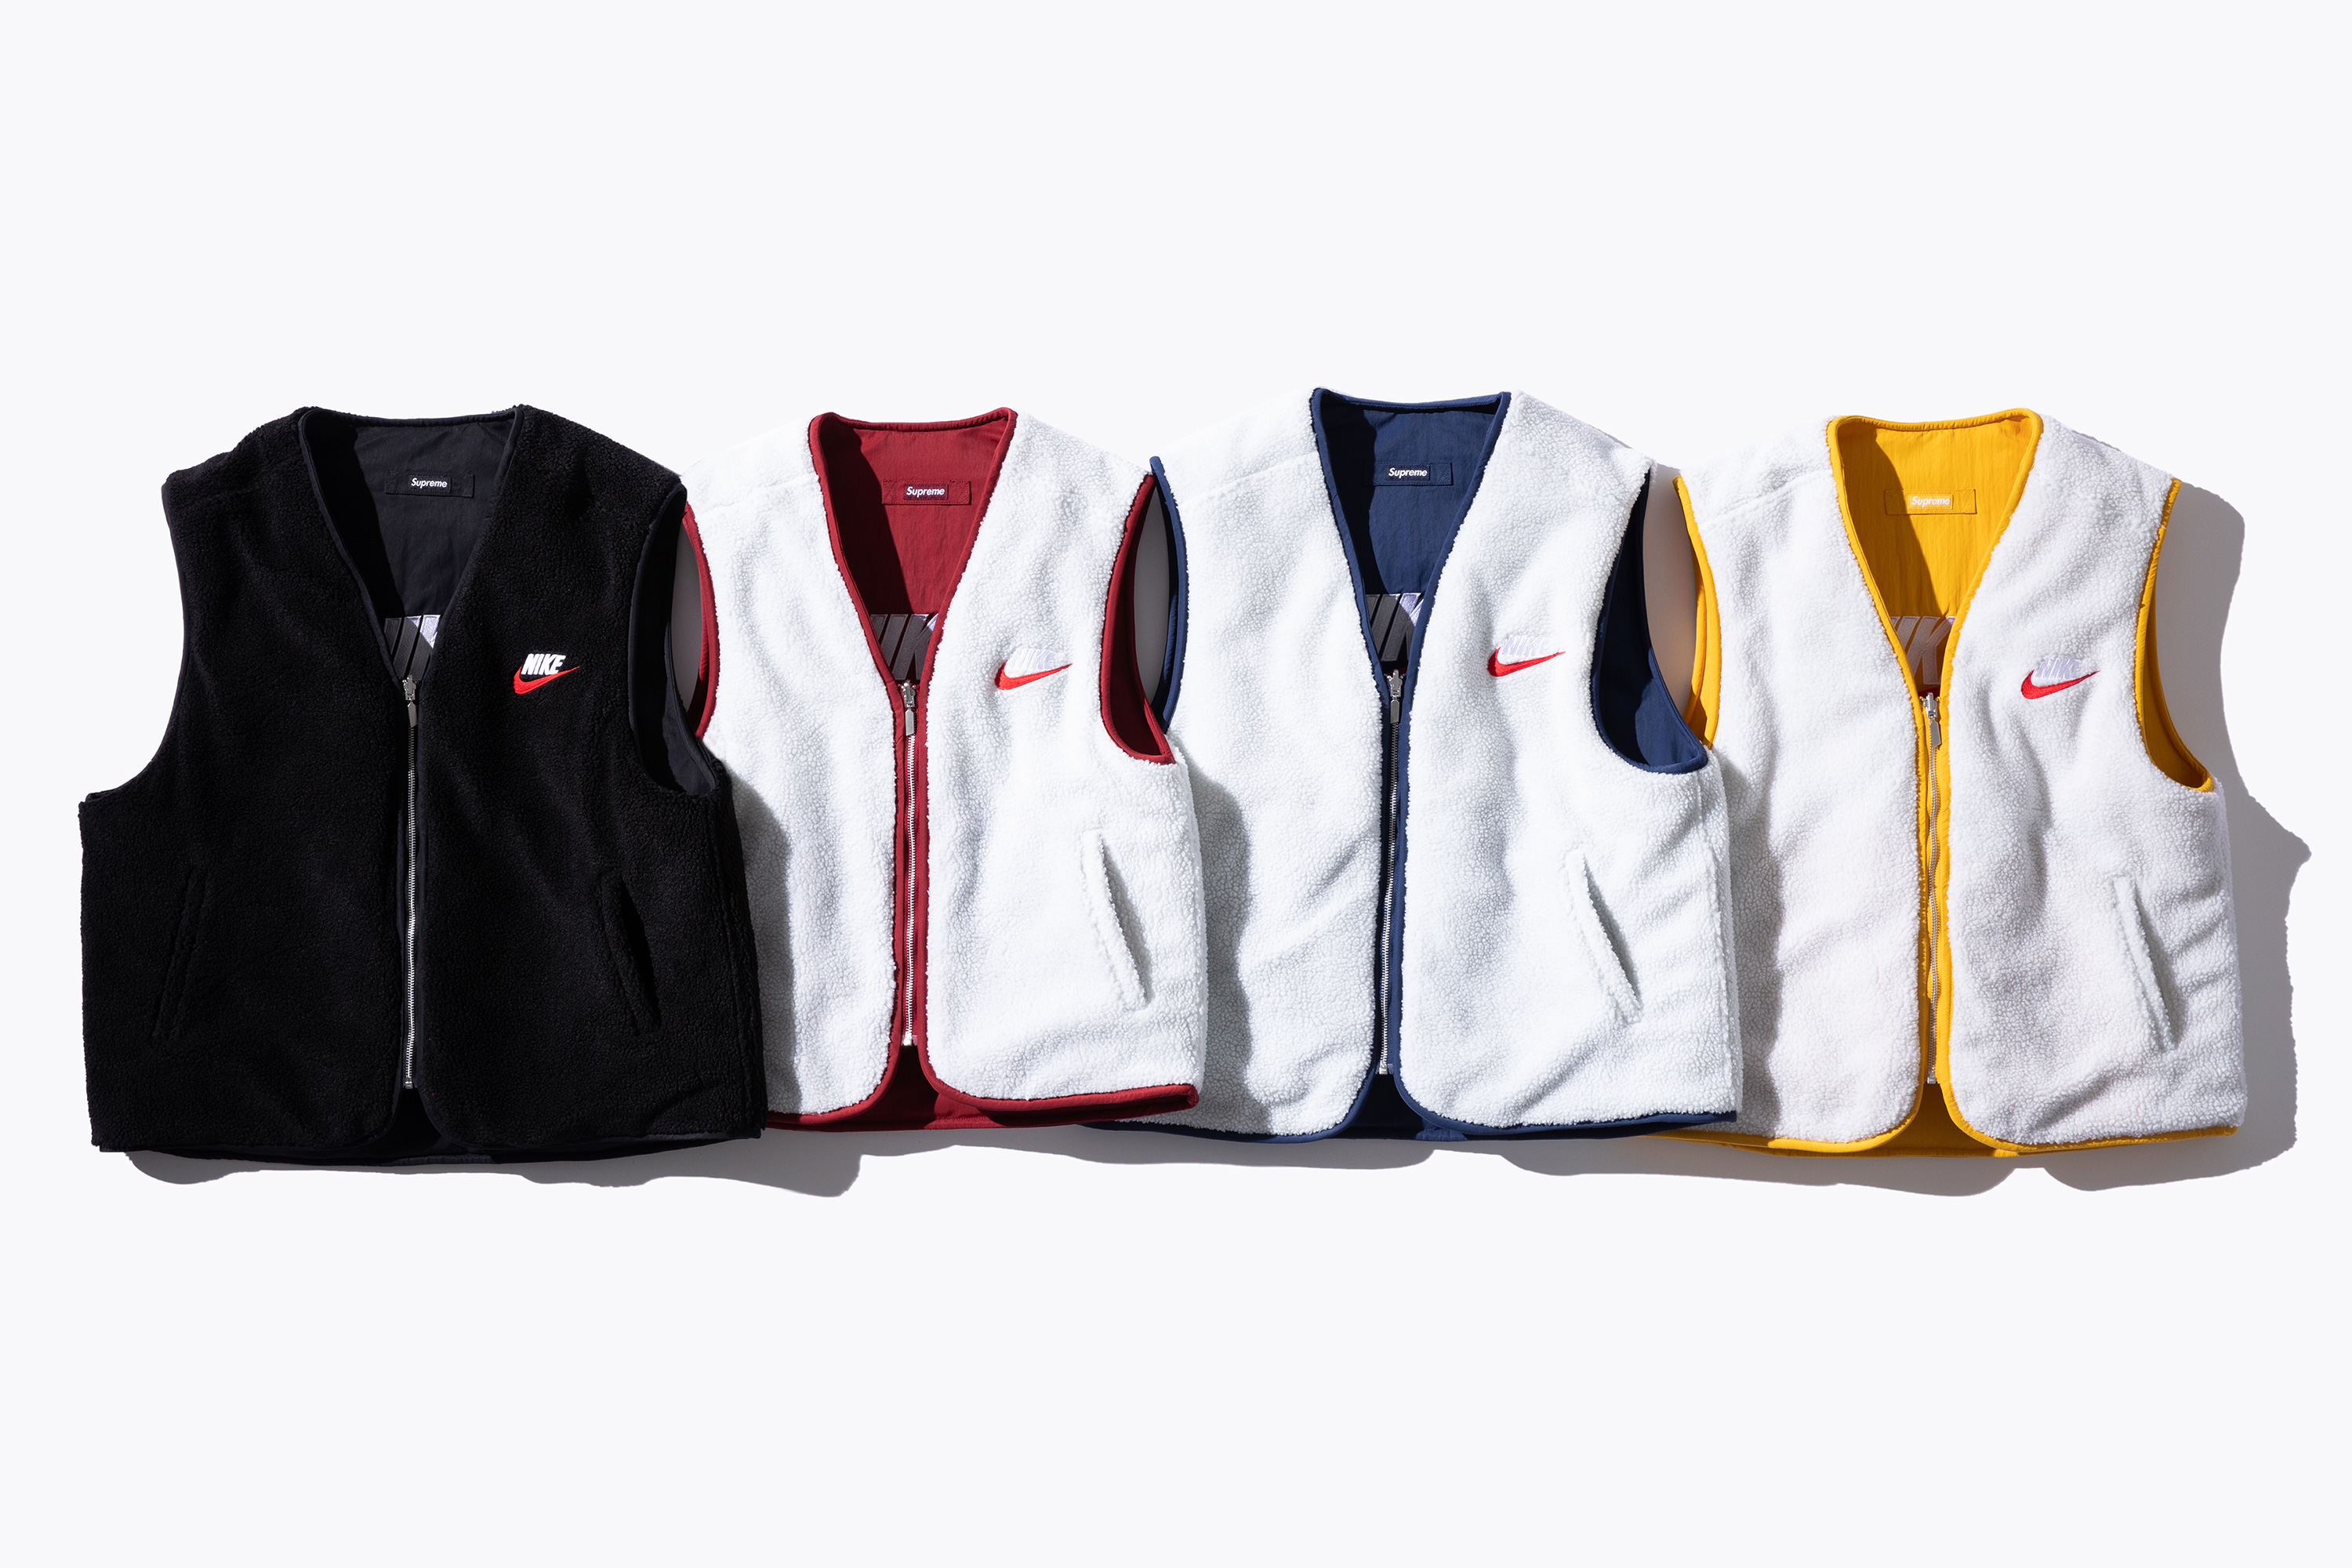 on sale 945b4 aafd1 Supreme x Nike Fall/Winter 2018 Collection | The Source